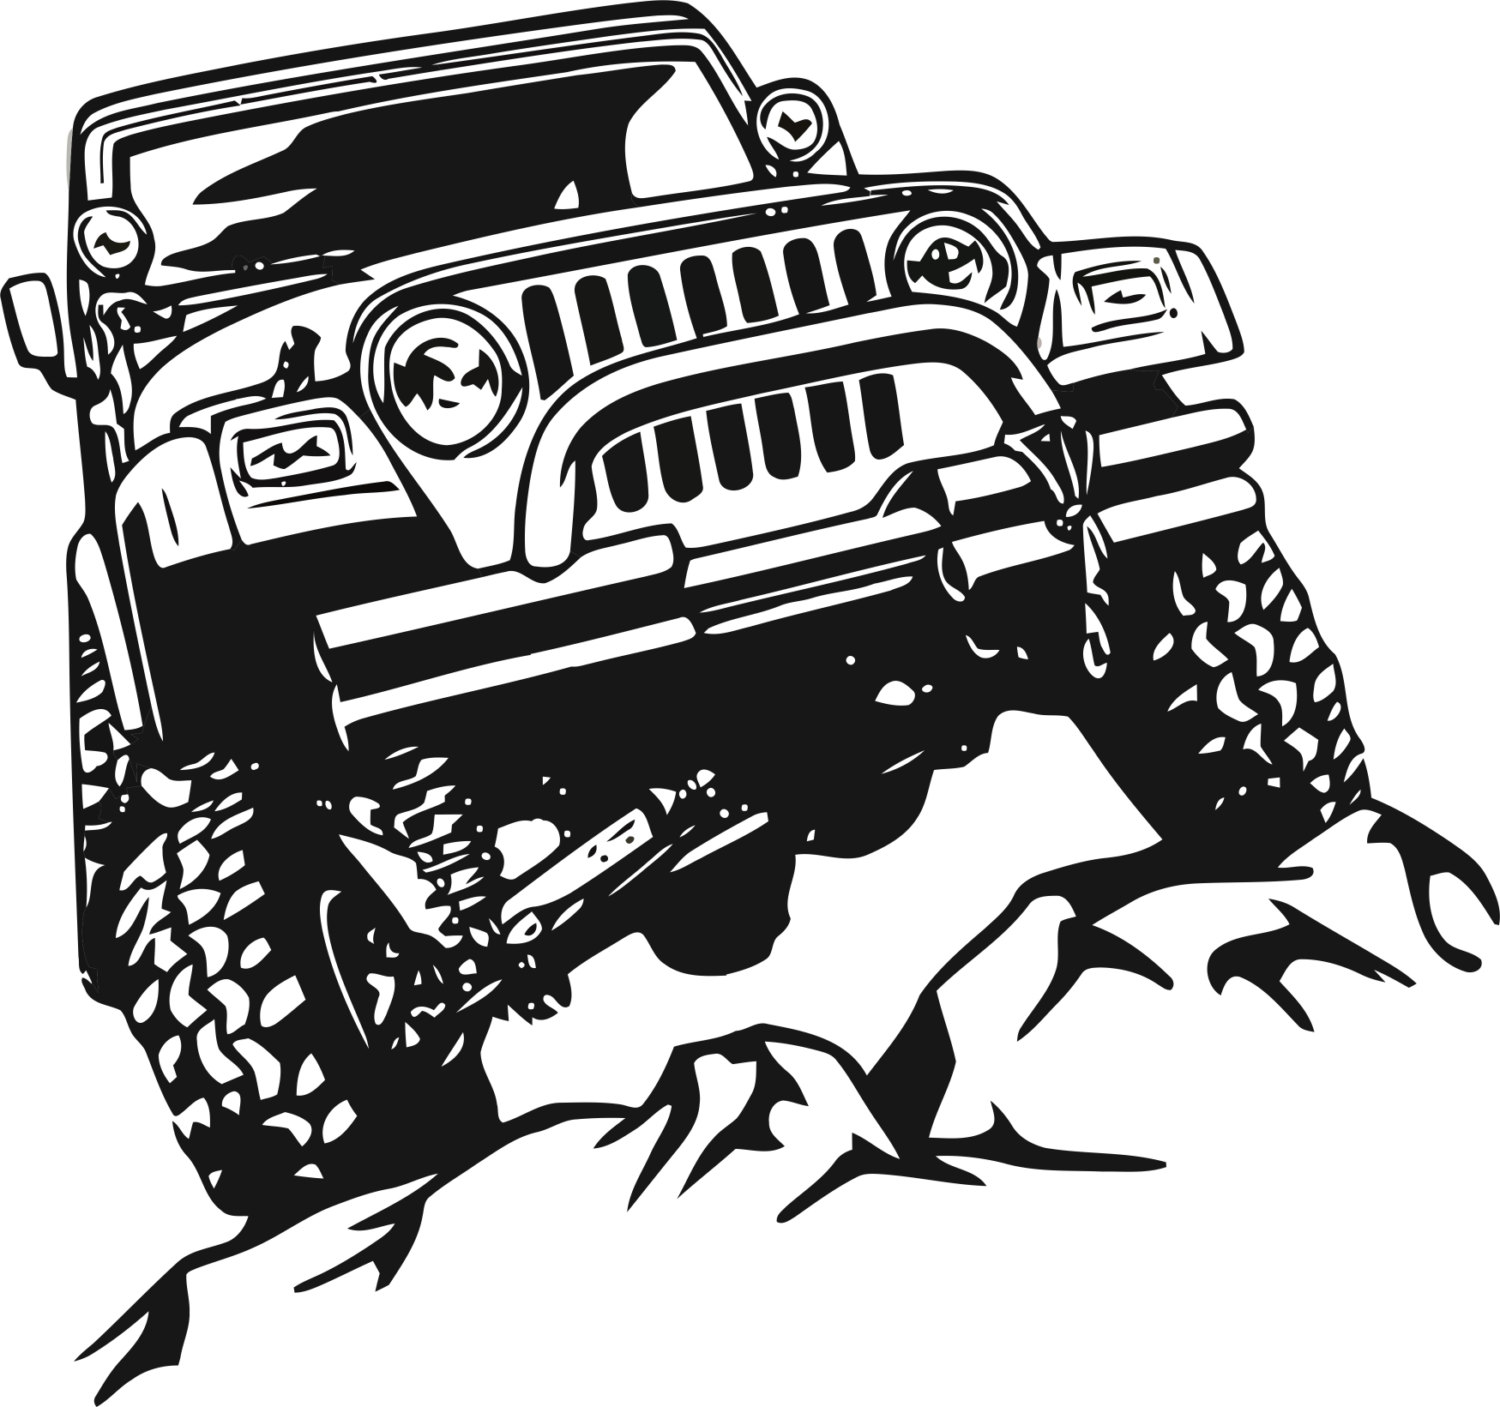 Free Jeep Wrangler Cliparts, Download Free Clip Art, Free Clip Art.